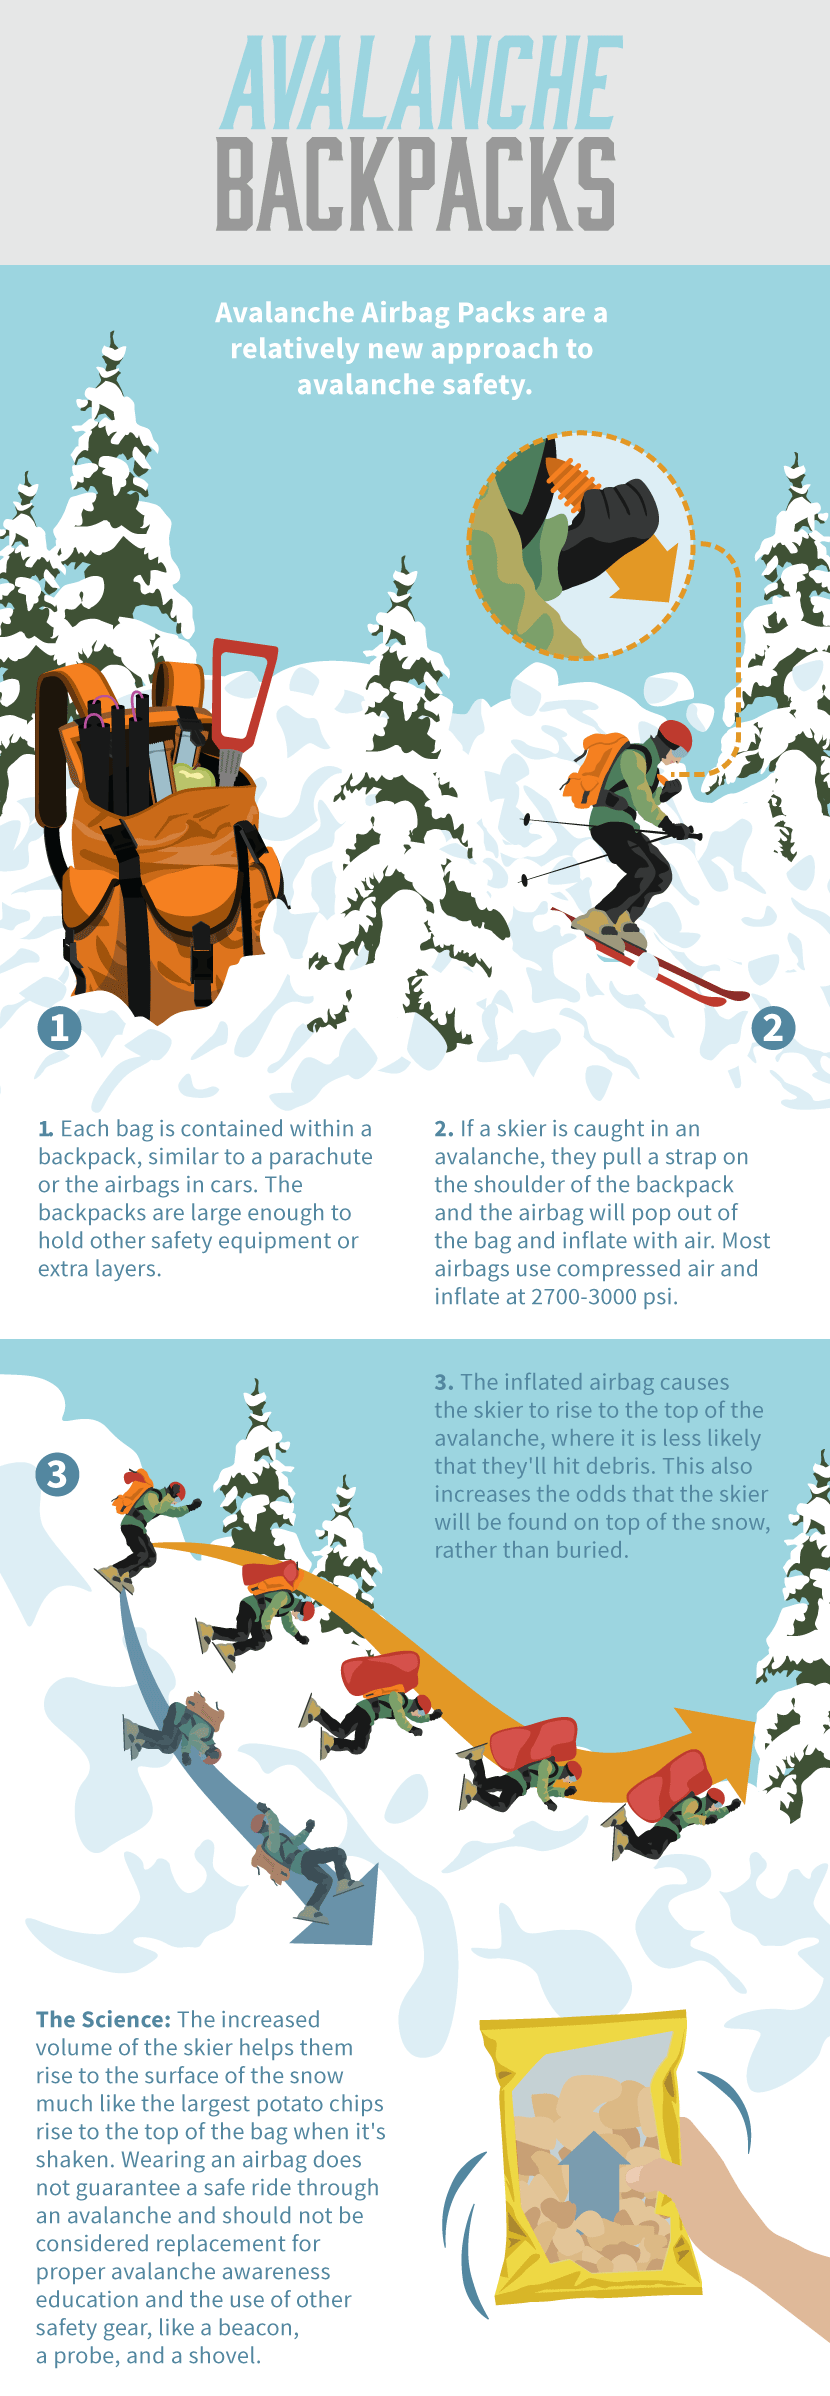 How Avalanche Backpacks Work